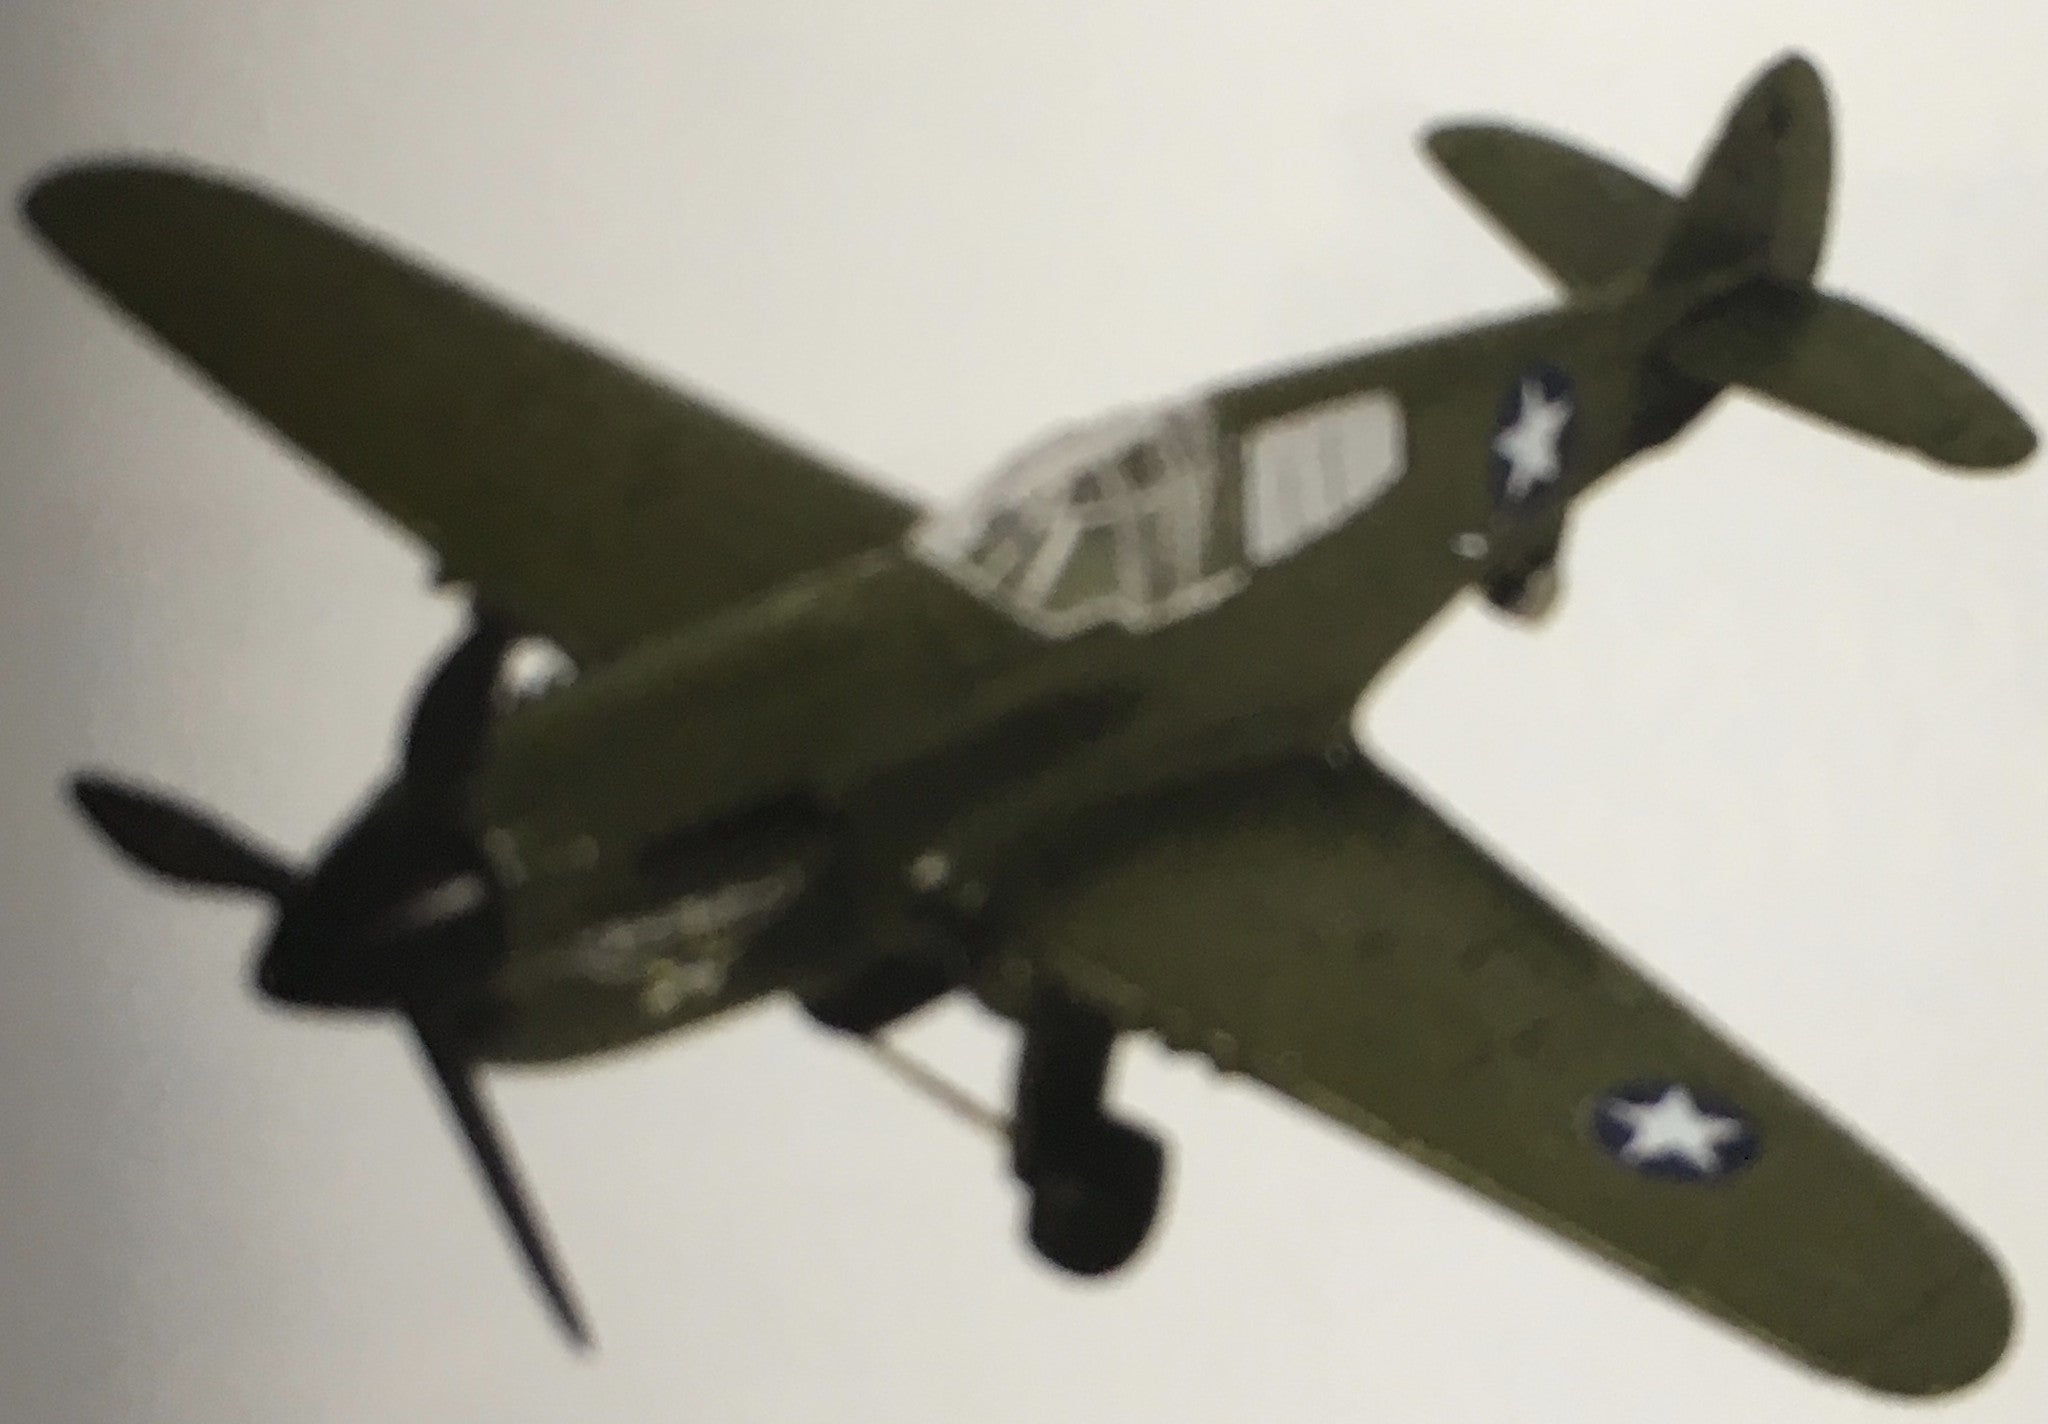 In Air P-40 War Hawk